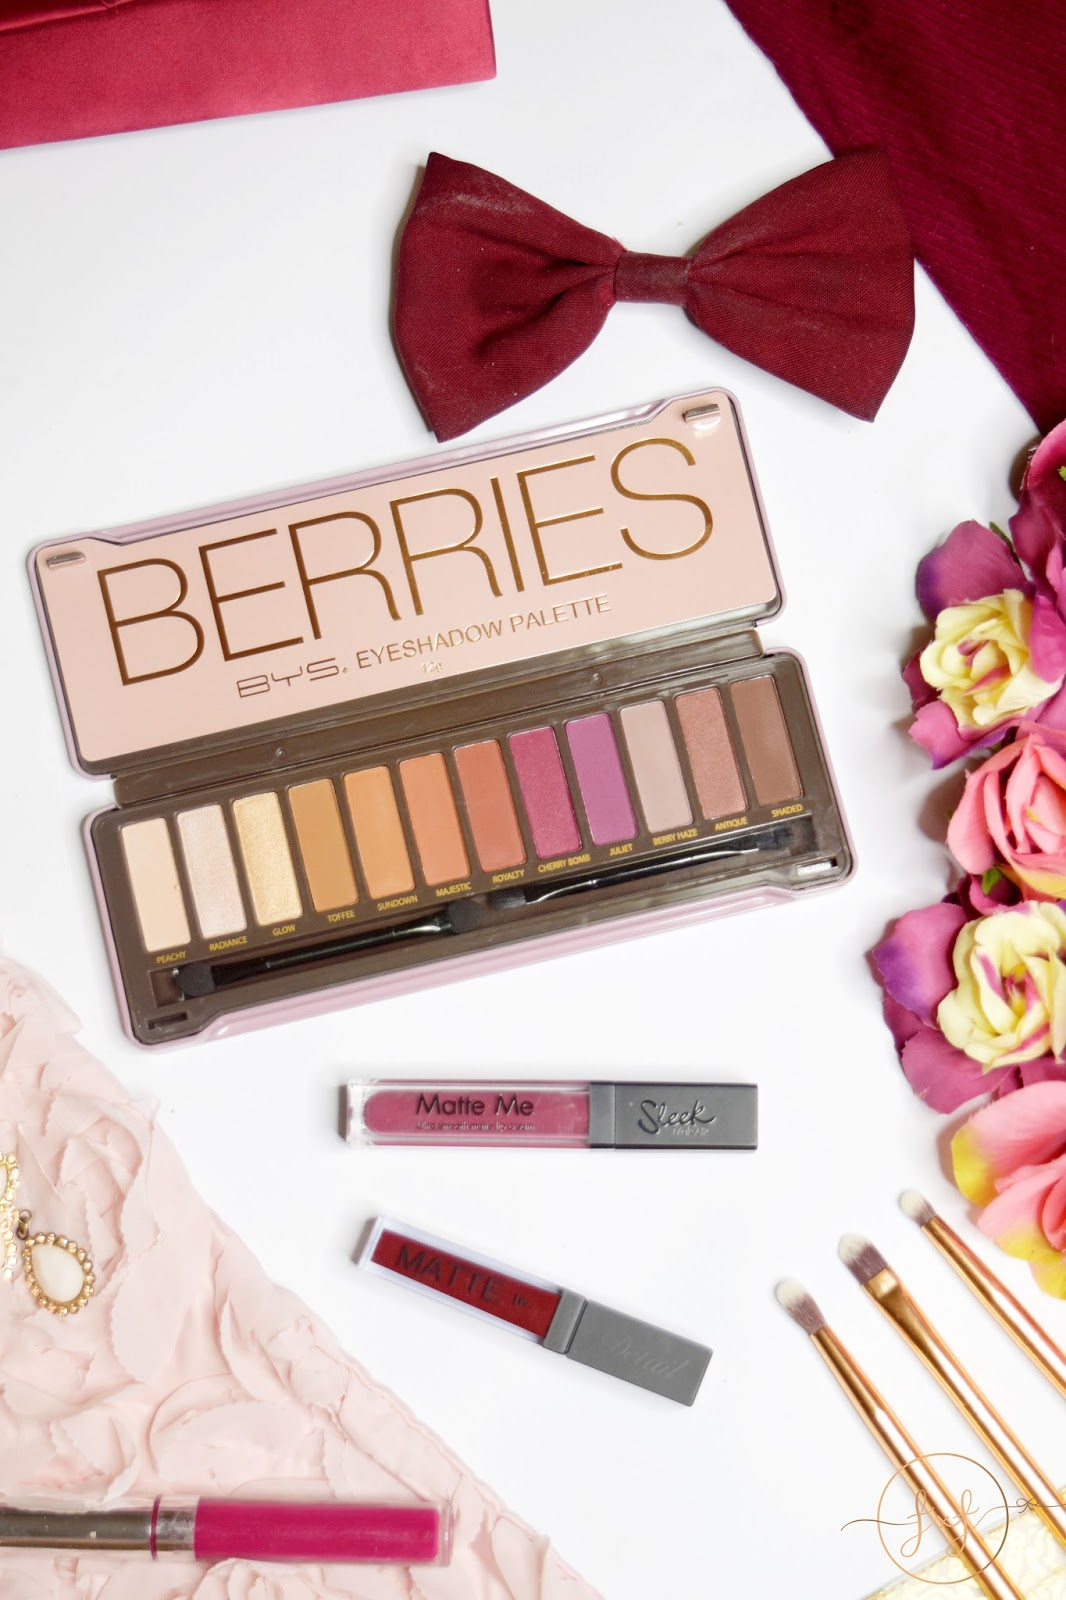 BYS Berries Eyeshadow Palette | Review & Swatches